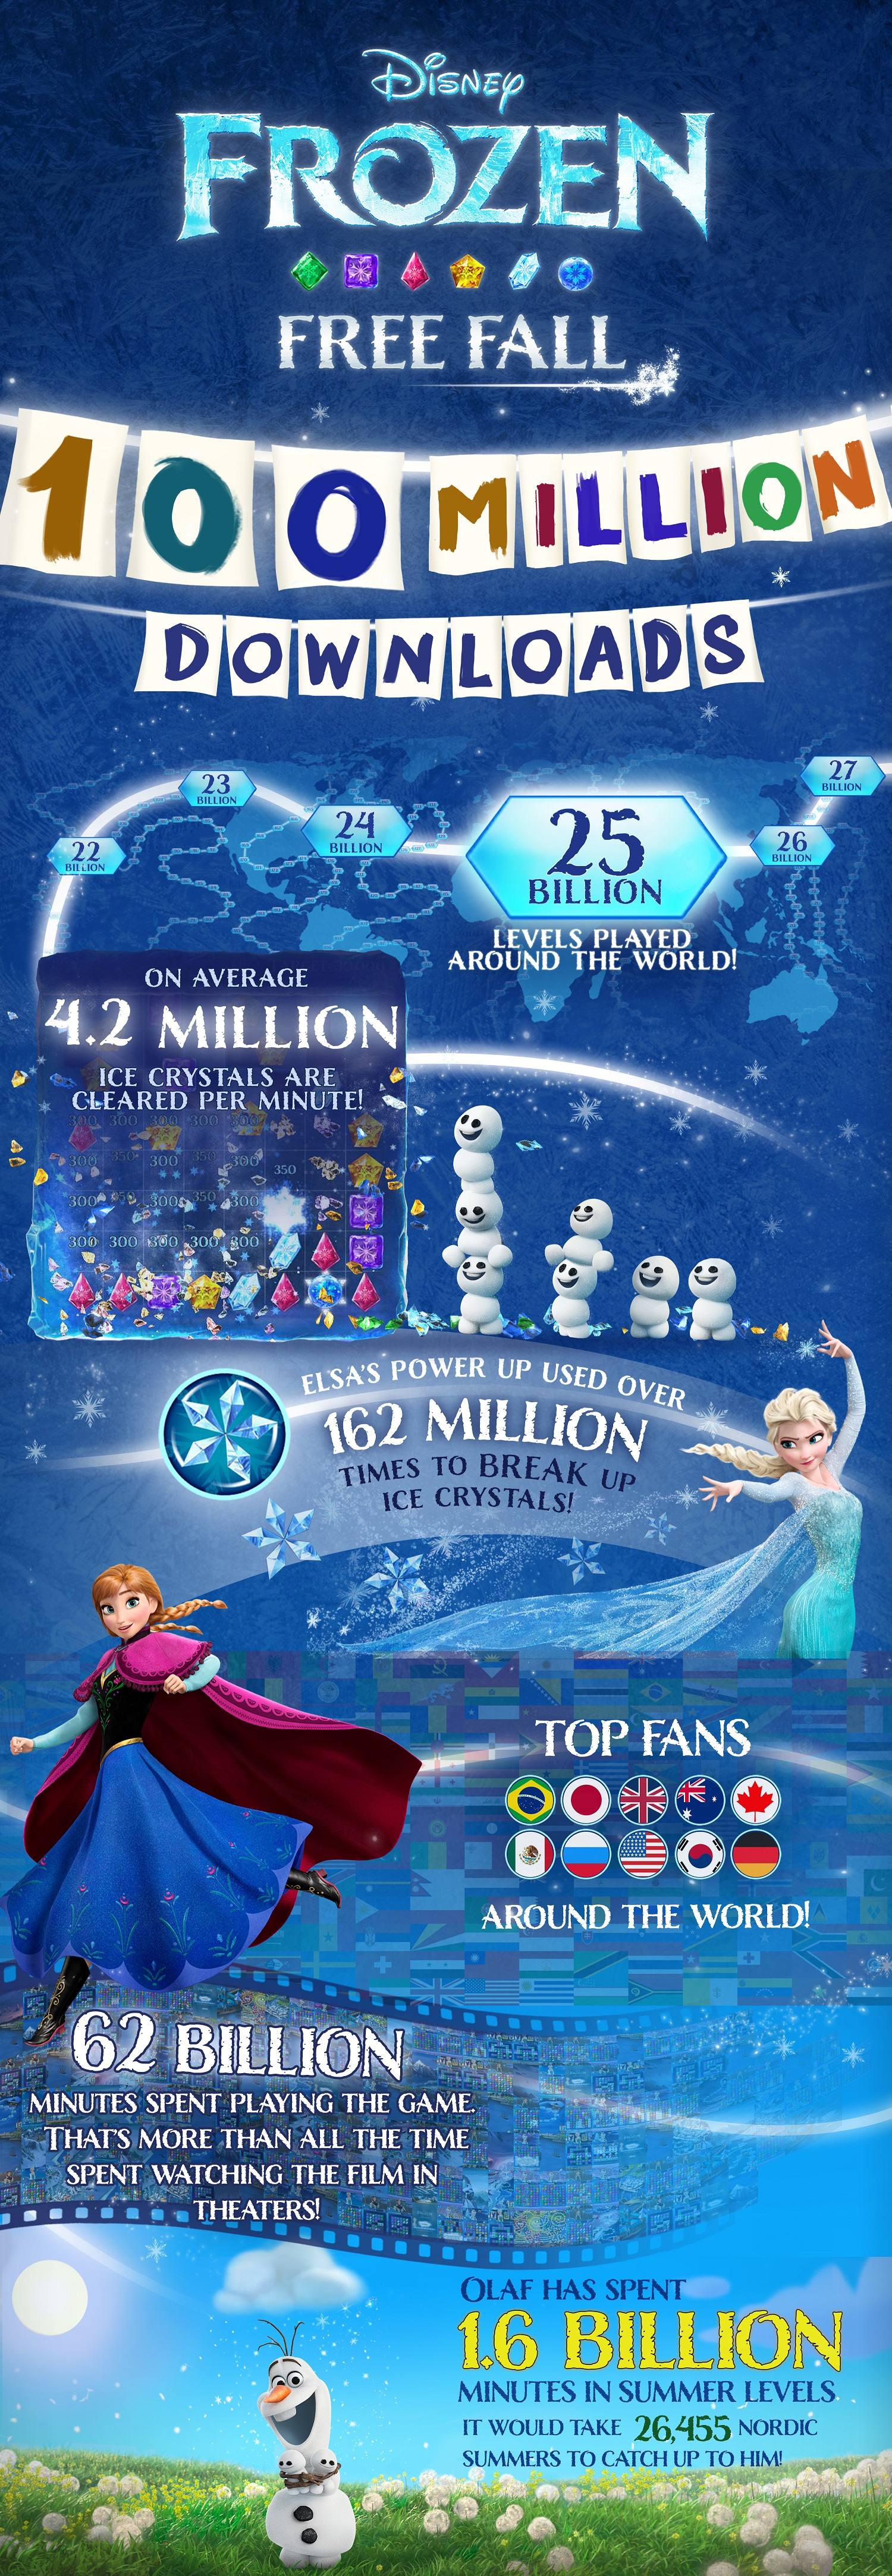 frozen_freefall_infographic_final-1